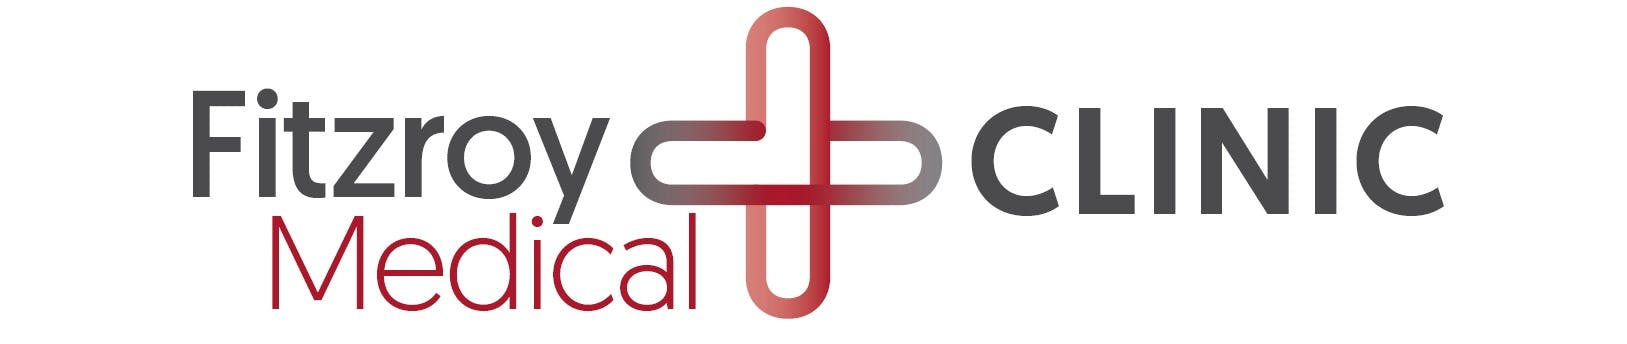 Fitzroy Medical Clinic Logo